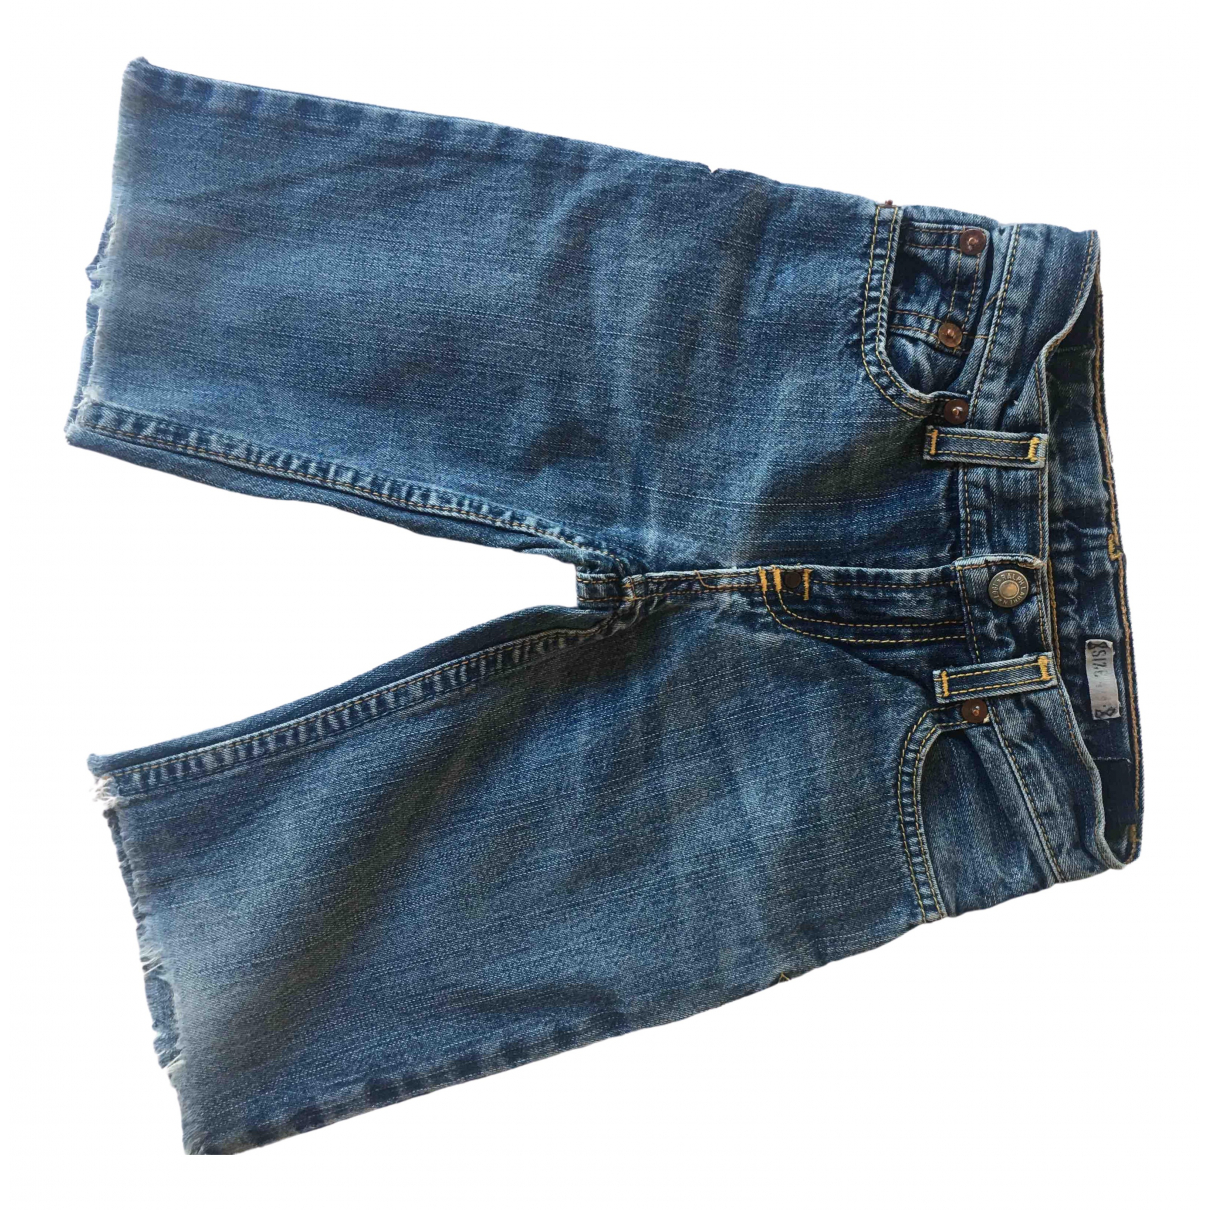 Polo Ralph Lauren \N Blue Denim - Jeans Shorts for Kids 4 years - up to 102cm FR